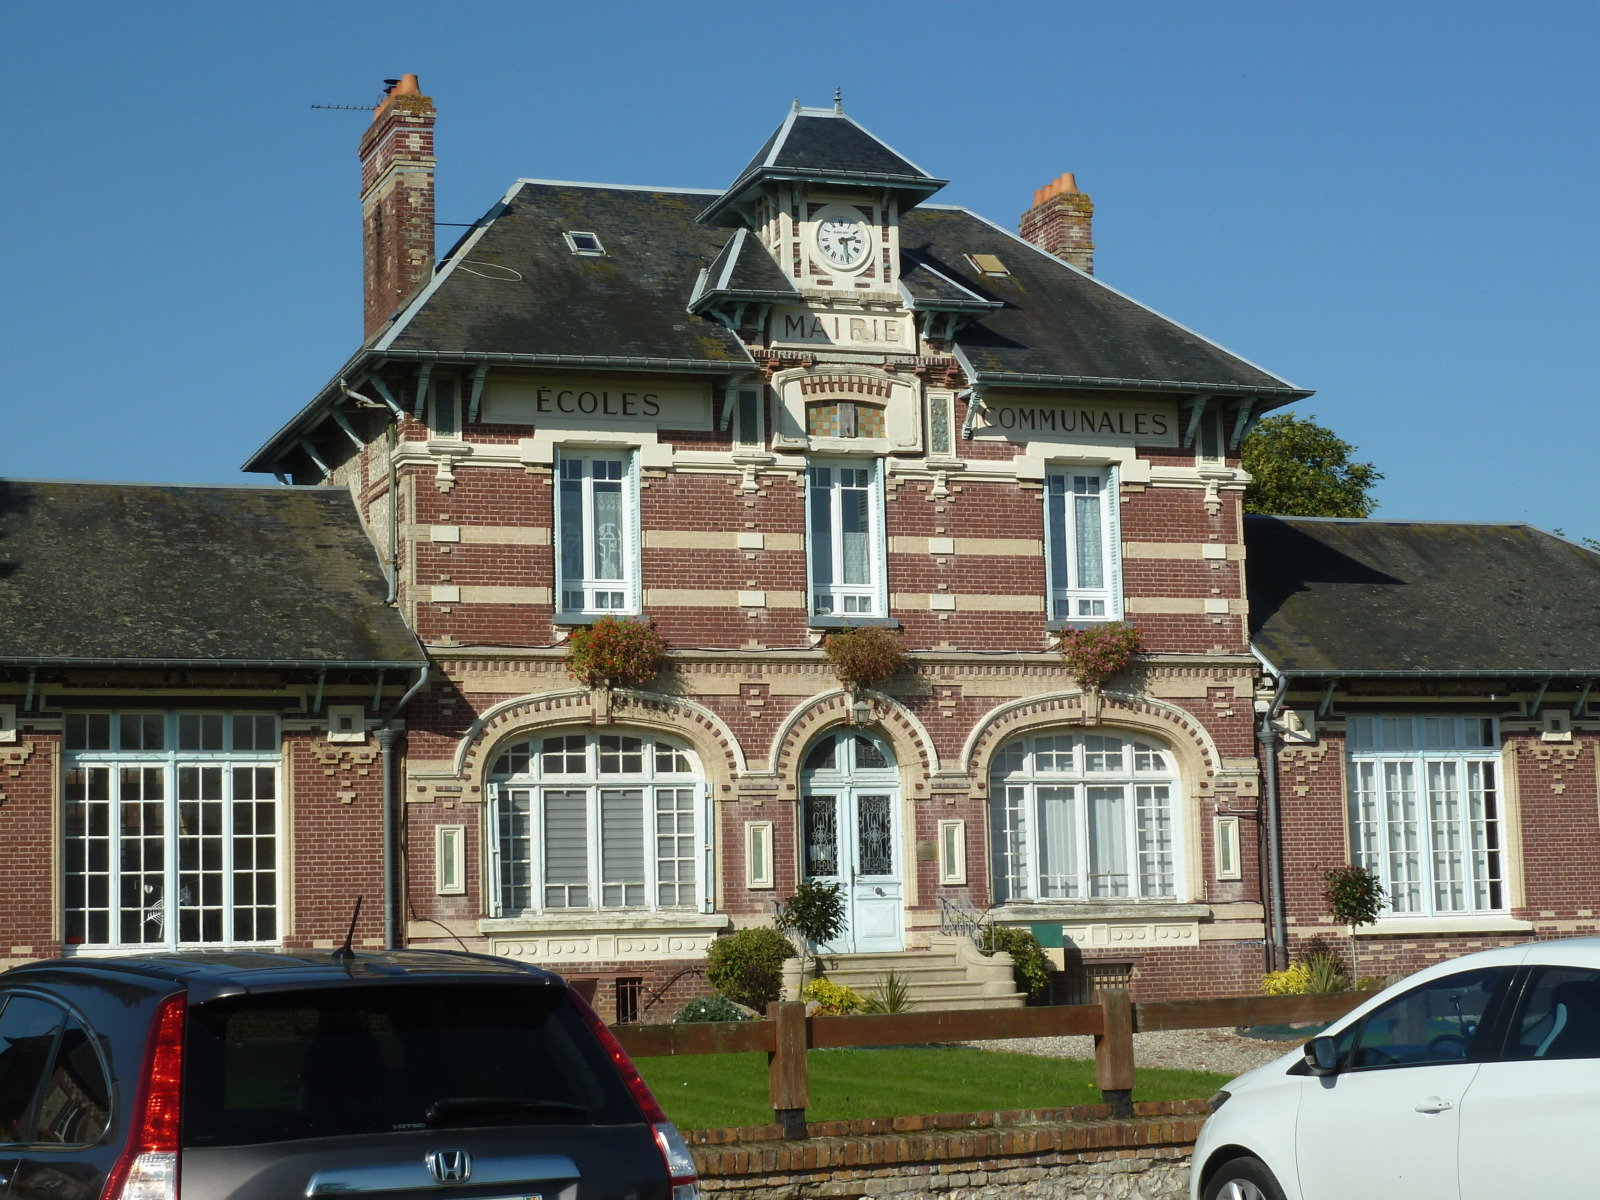 French Mairie